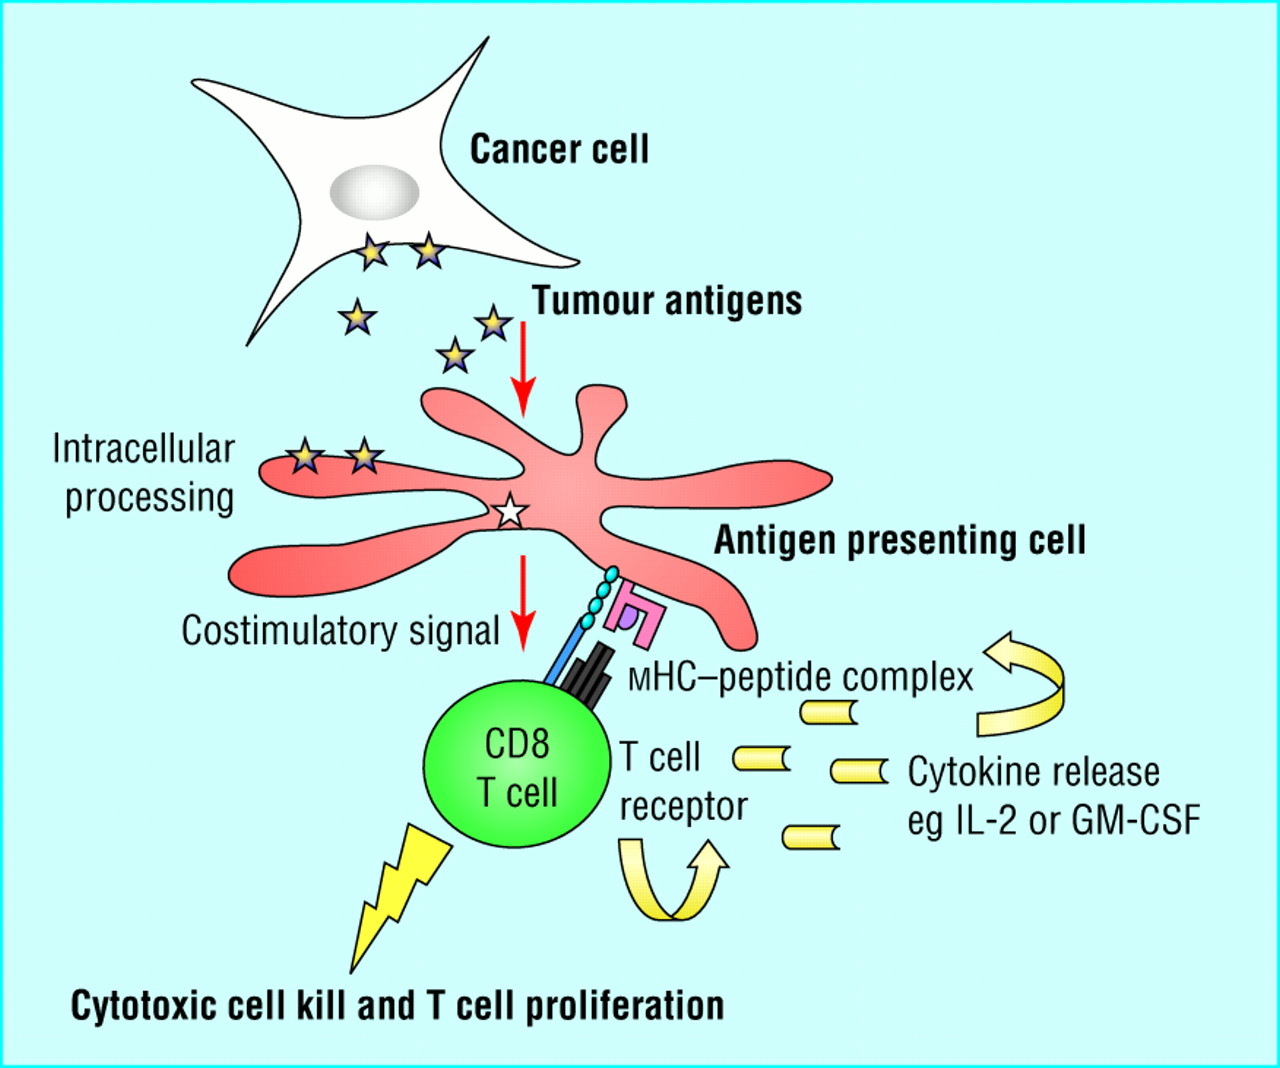 Image explains about Cellular immunotherapy